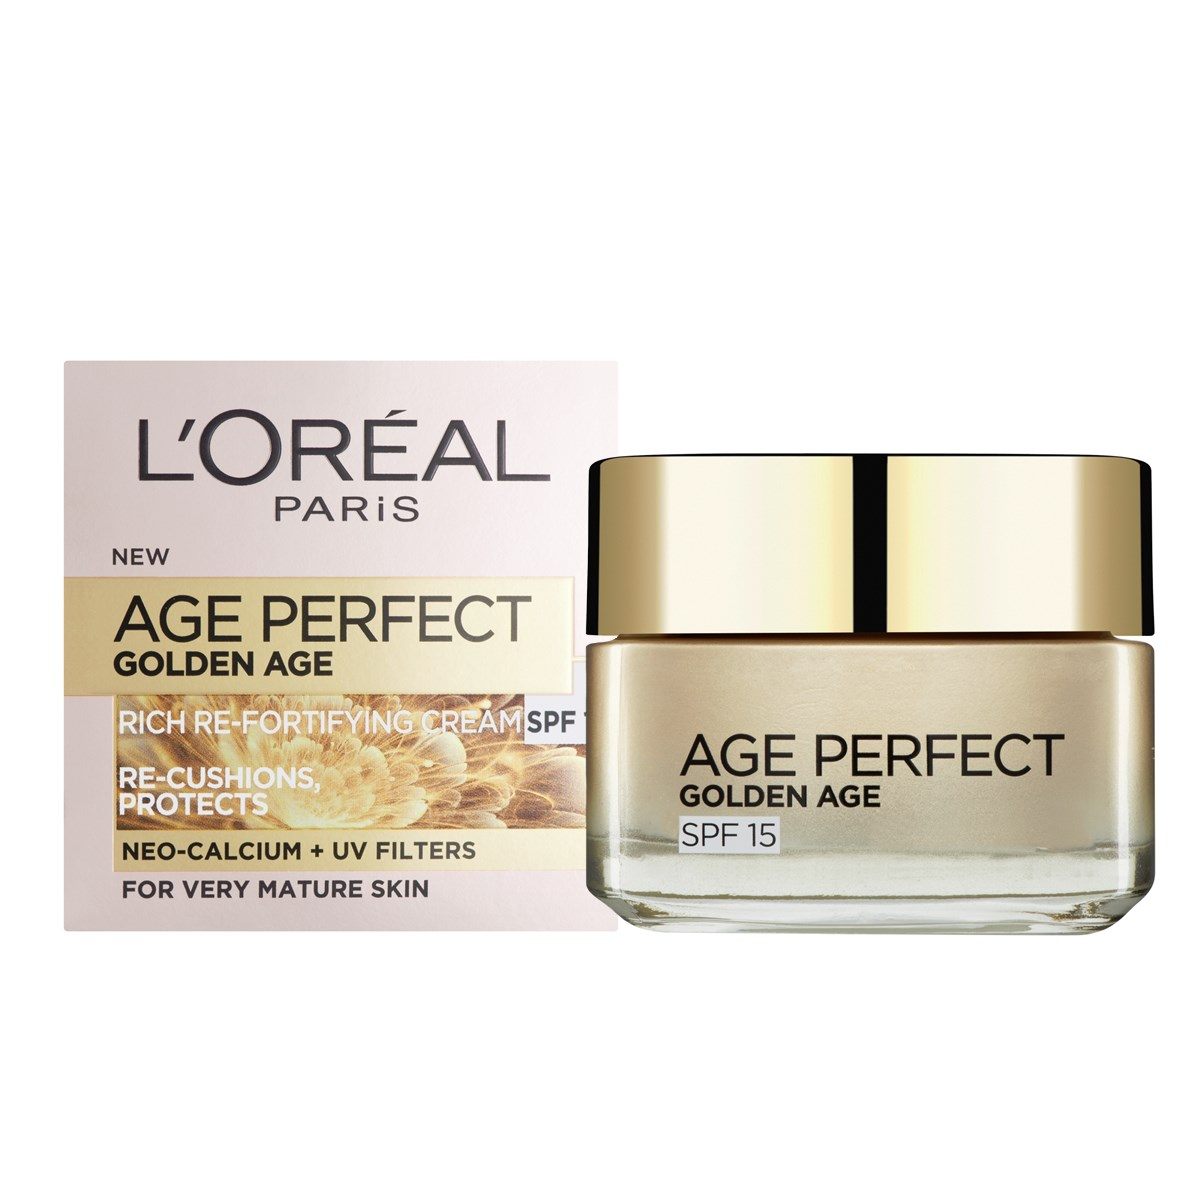 L'Oreal Paris Age Perfect Golden Age Rich Re-Fortifying SPF15 Day Cream